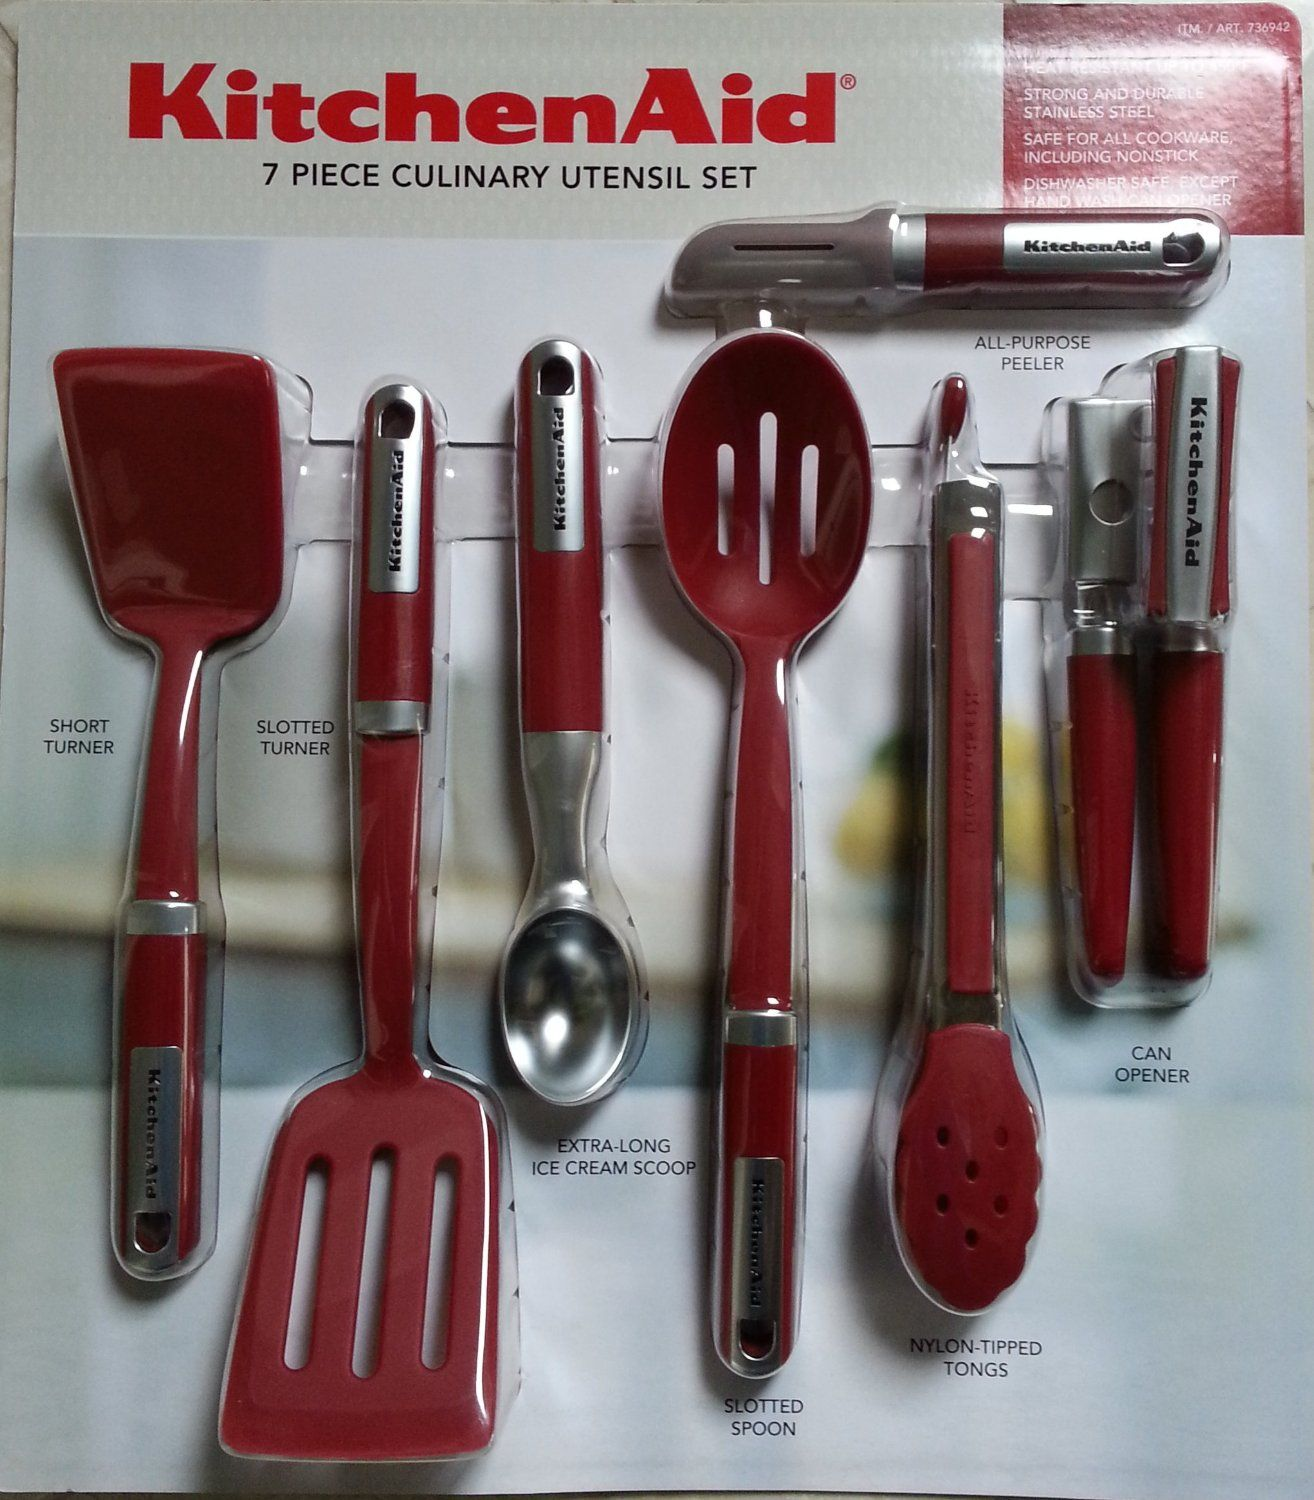 Kitchenaid Cook S 7 Piece Culinary Utensil Set Red Set Includes